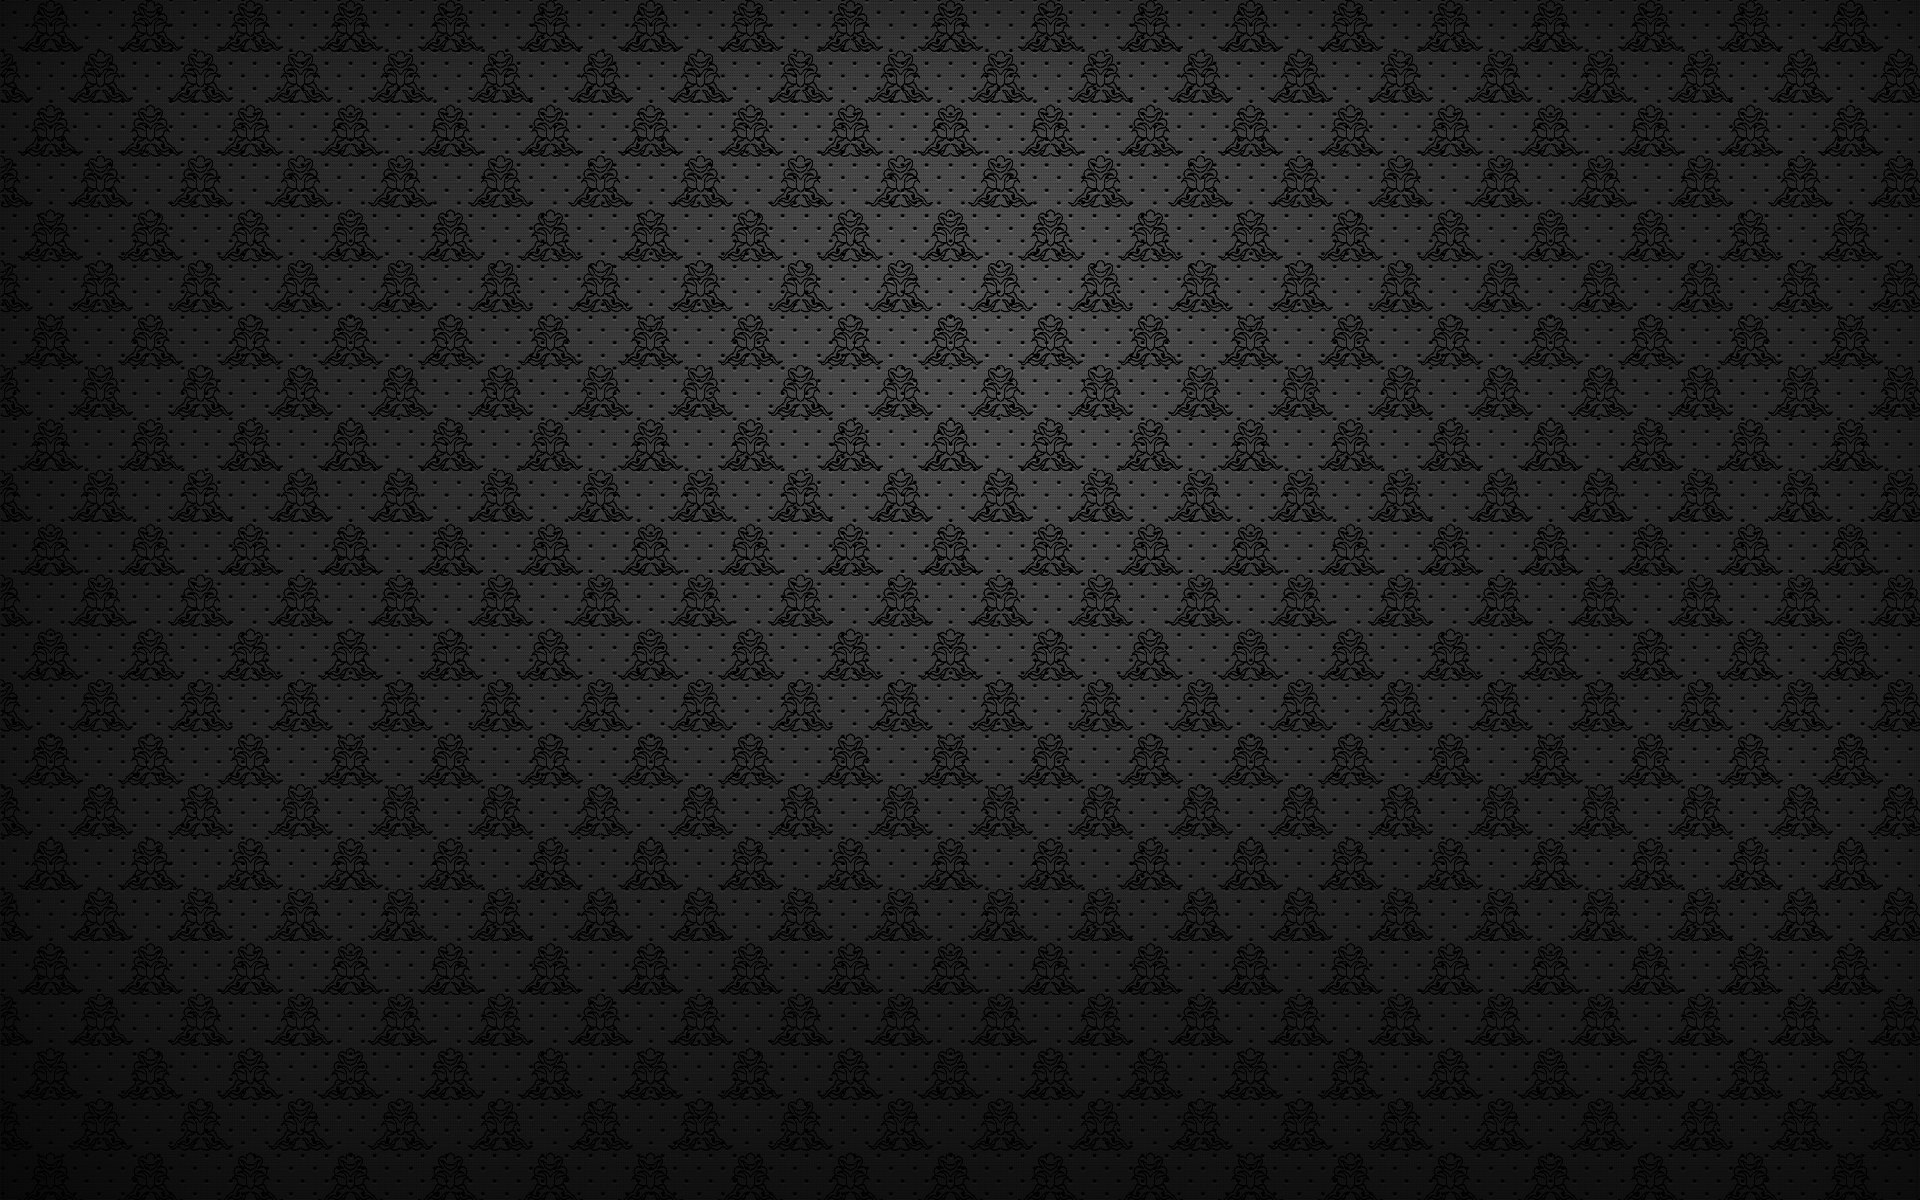 textures patterns, templates, download photo, pattern background textures, обои